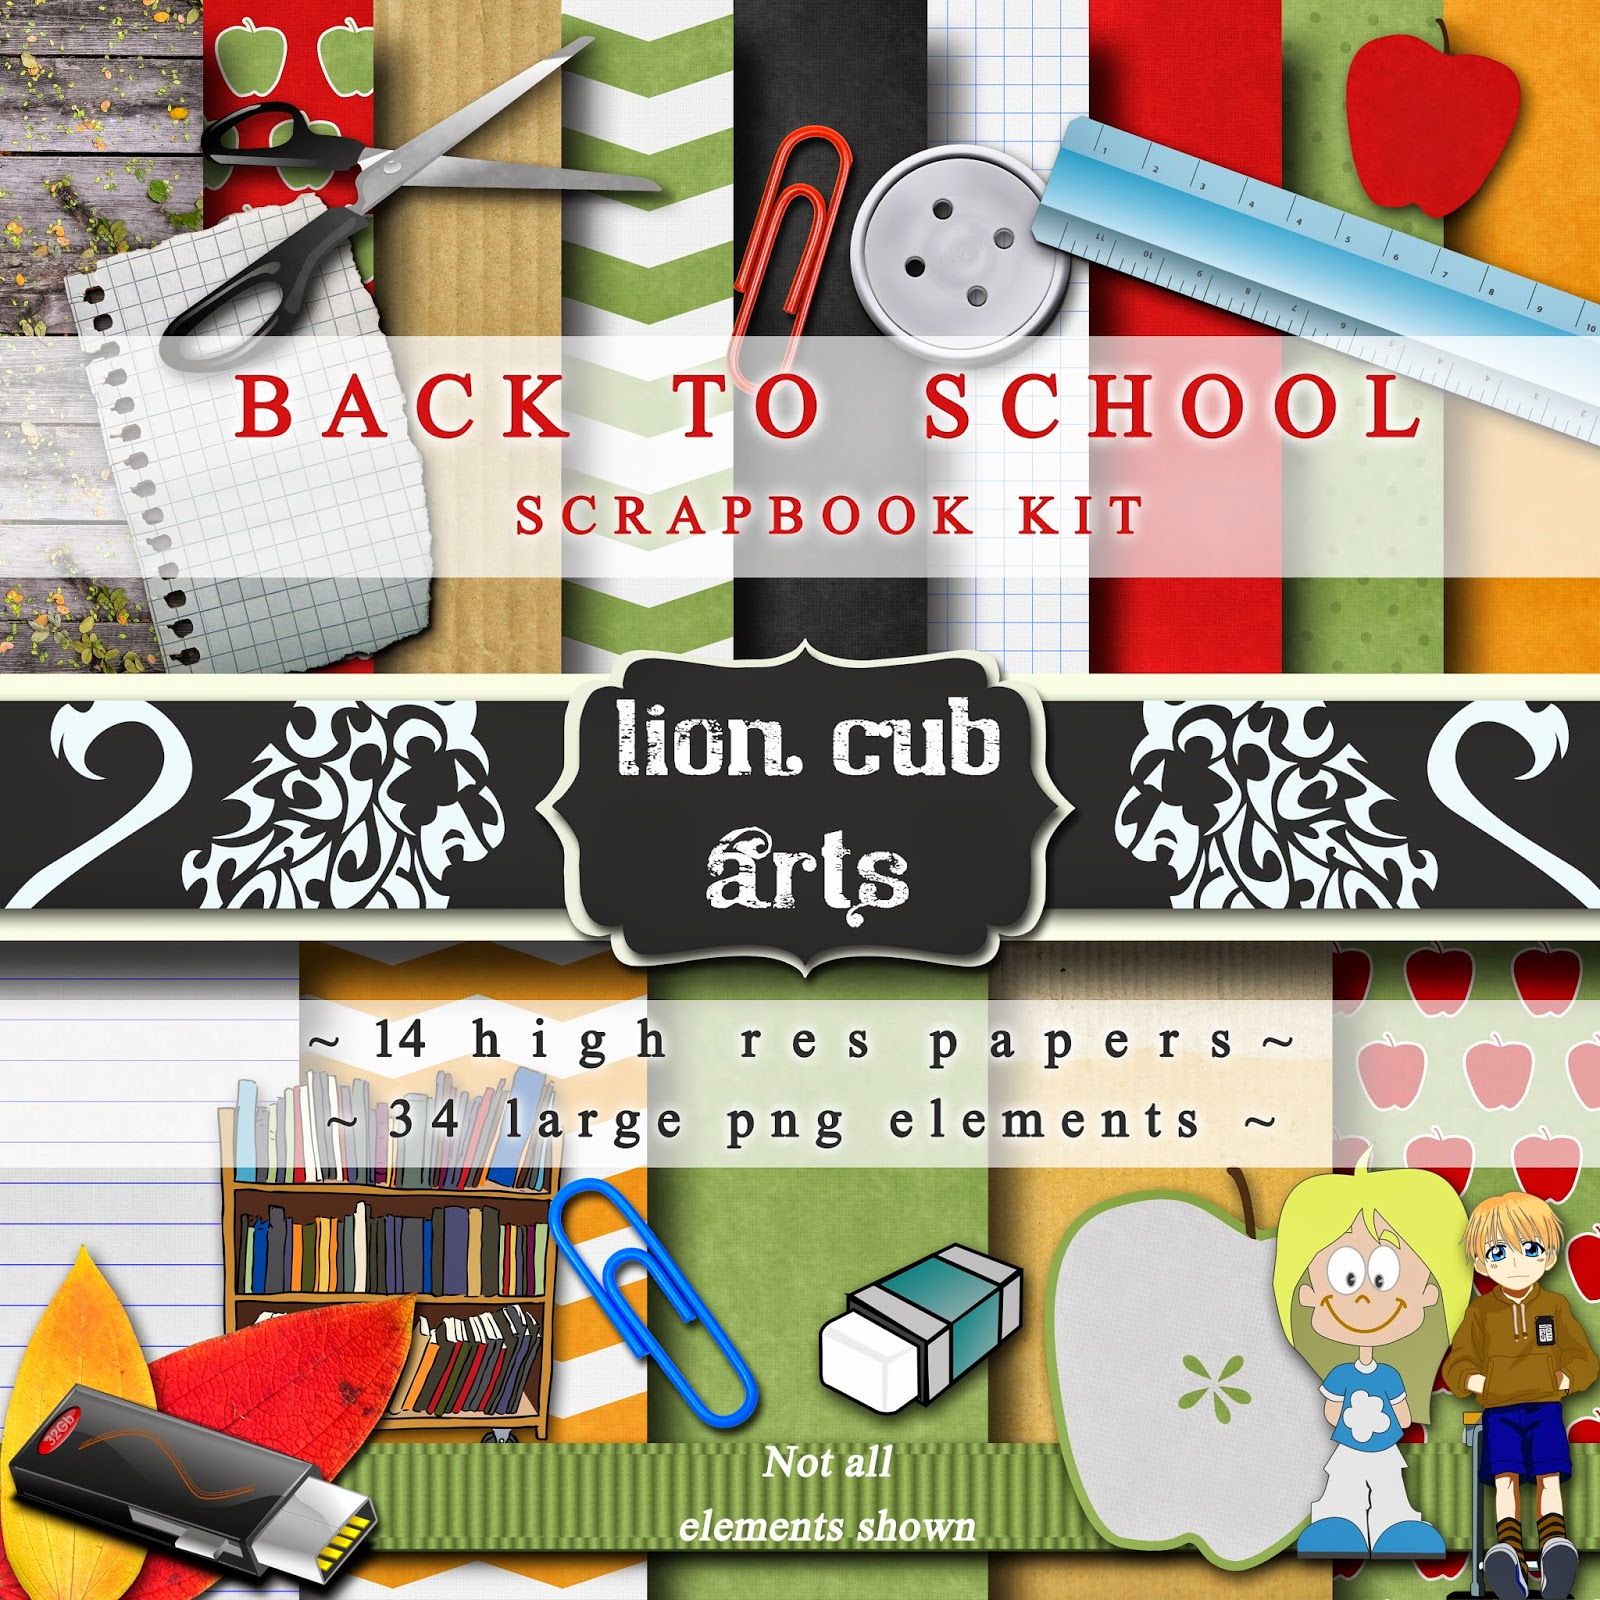 https://www.etsy.com/listing/196656508/back-to-school-fall-scrapbook-kit-14?ref=shop_home_feat_2